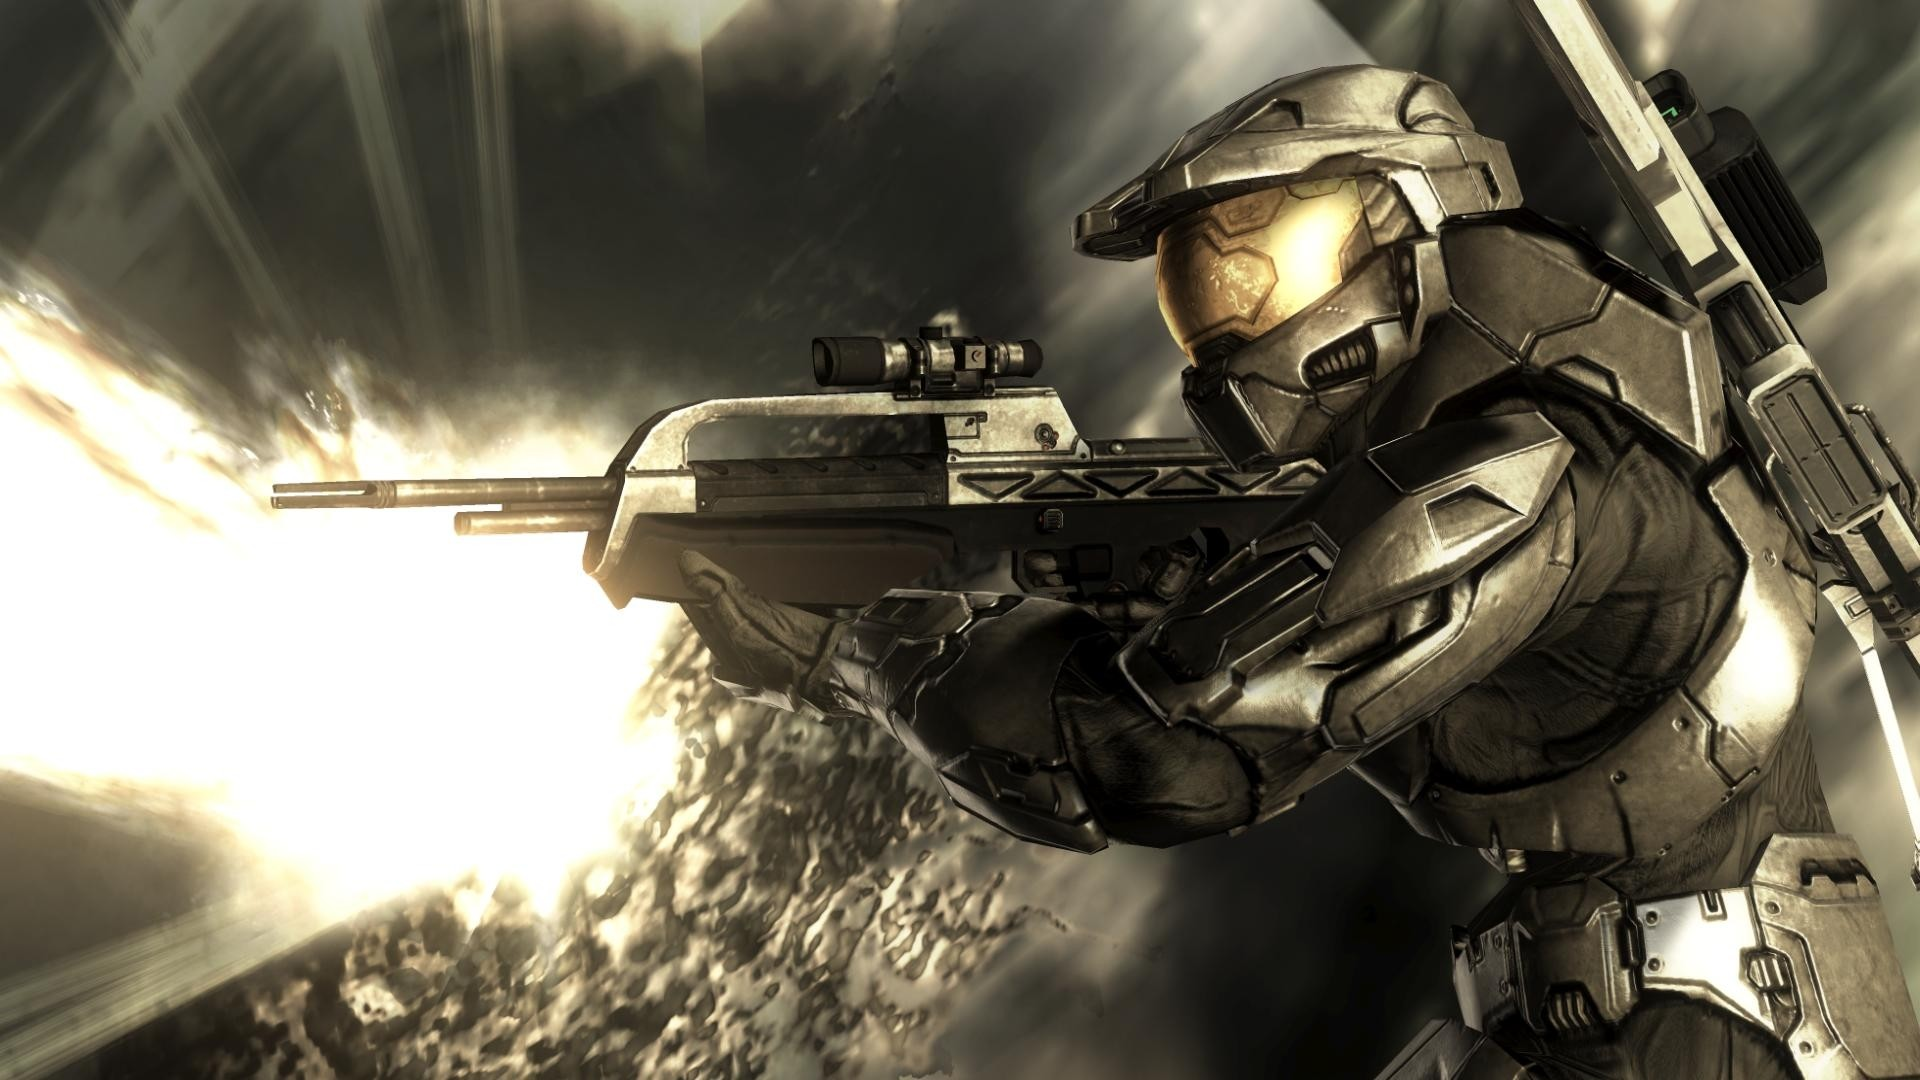 Background Full Hd 1080p Halo 3 126661 Hd Wallpaper